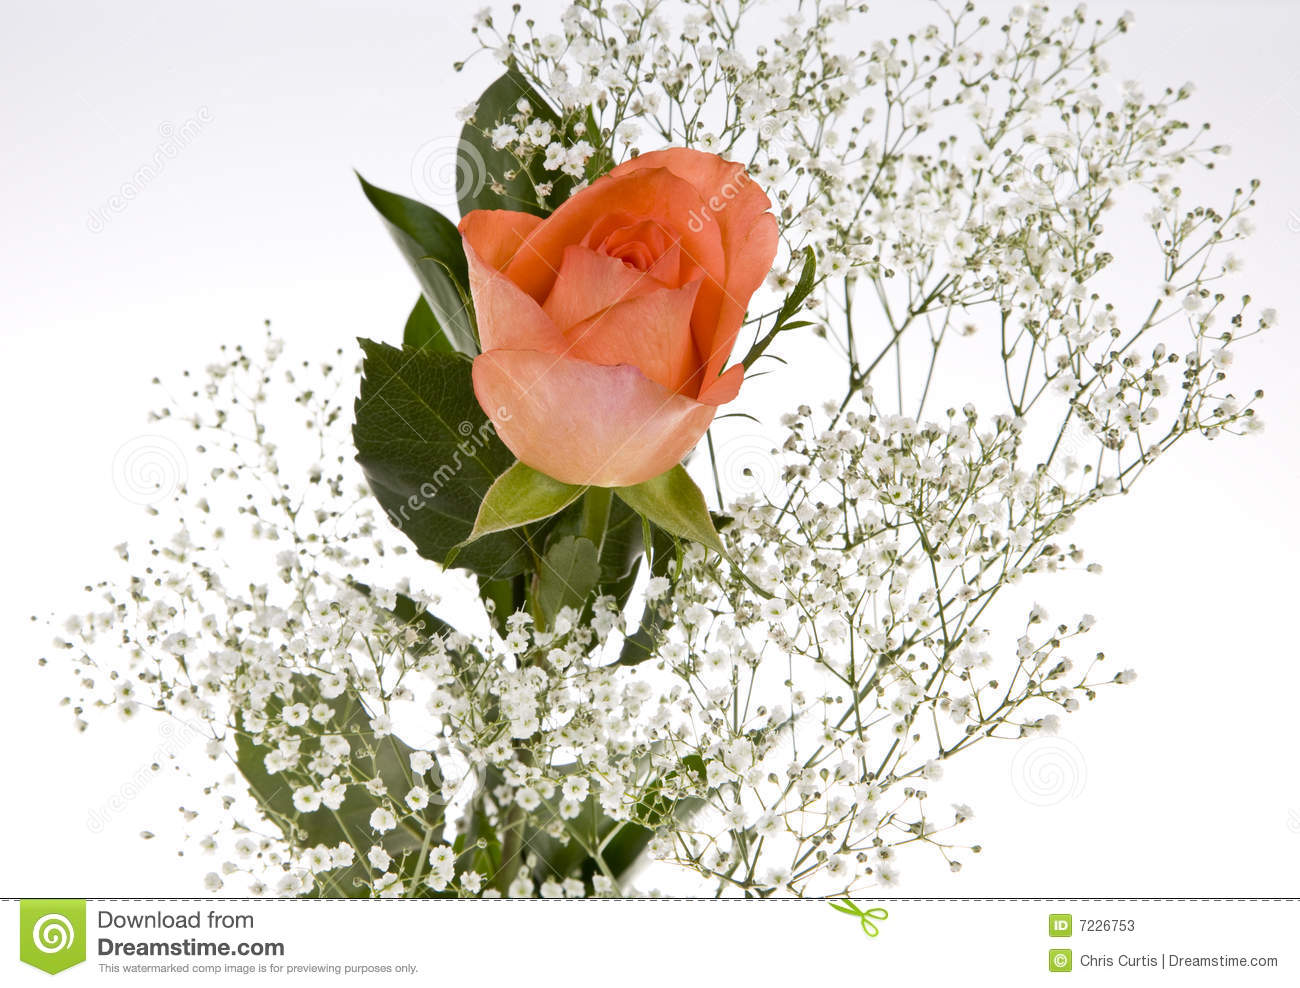 197ea6f53a Orange Rose With Baby s Breath Stock Image - Image of beautiful ...